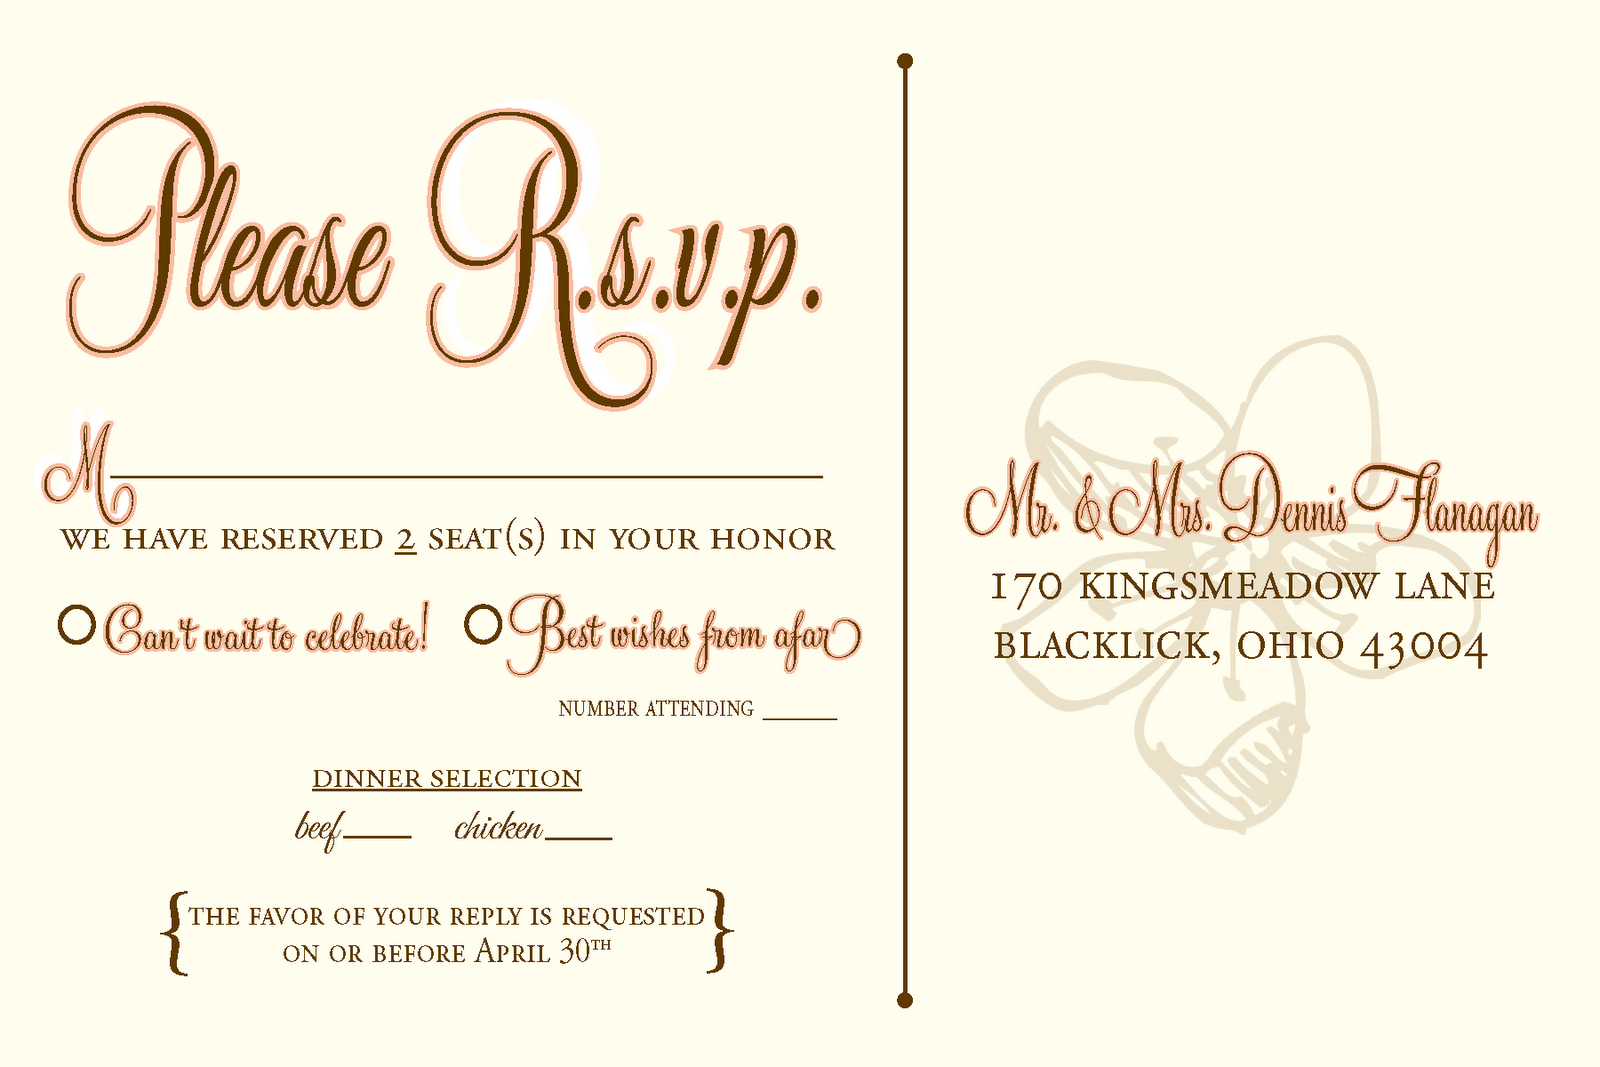 Rsvp Wording Template rsvp invitation wording wedding invitation – Wording for Wedding Rsvp Cards